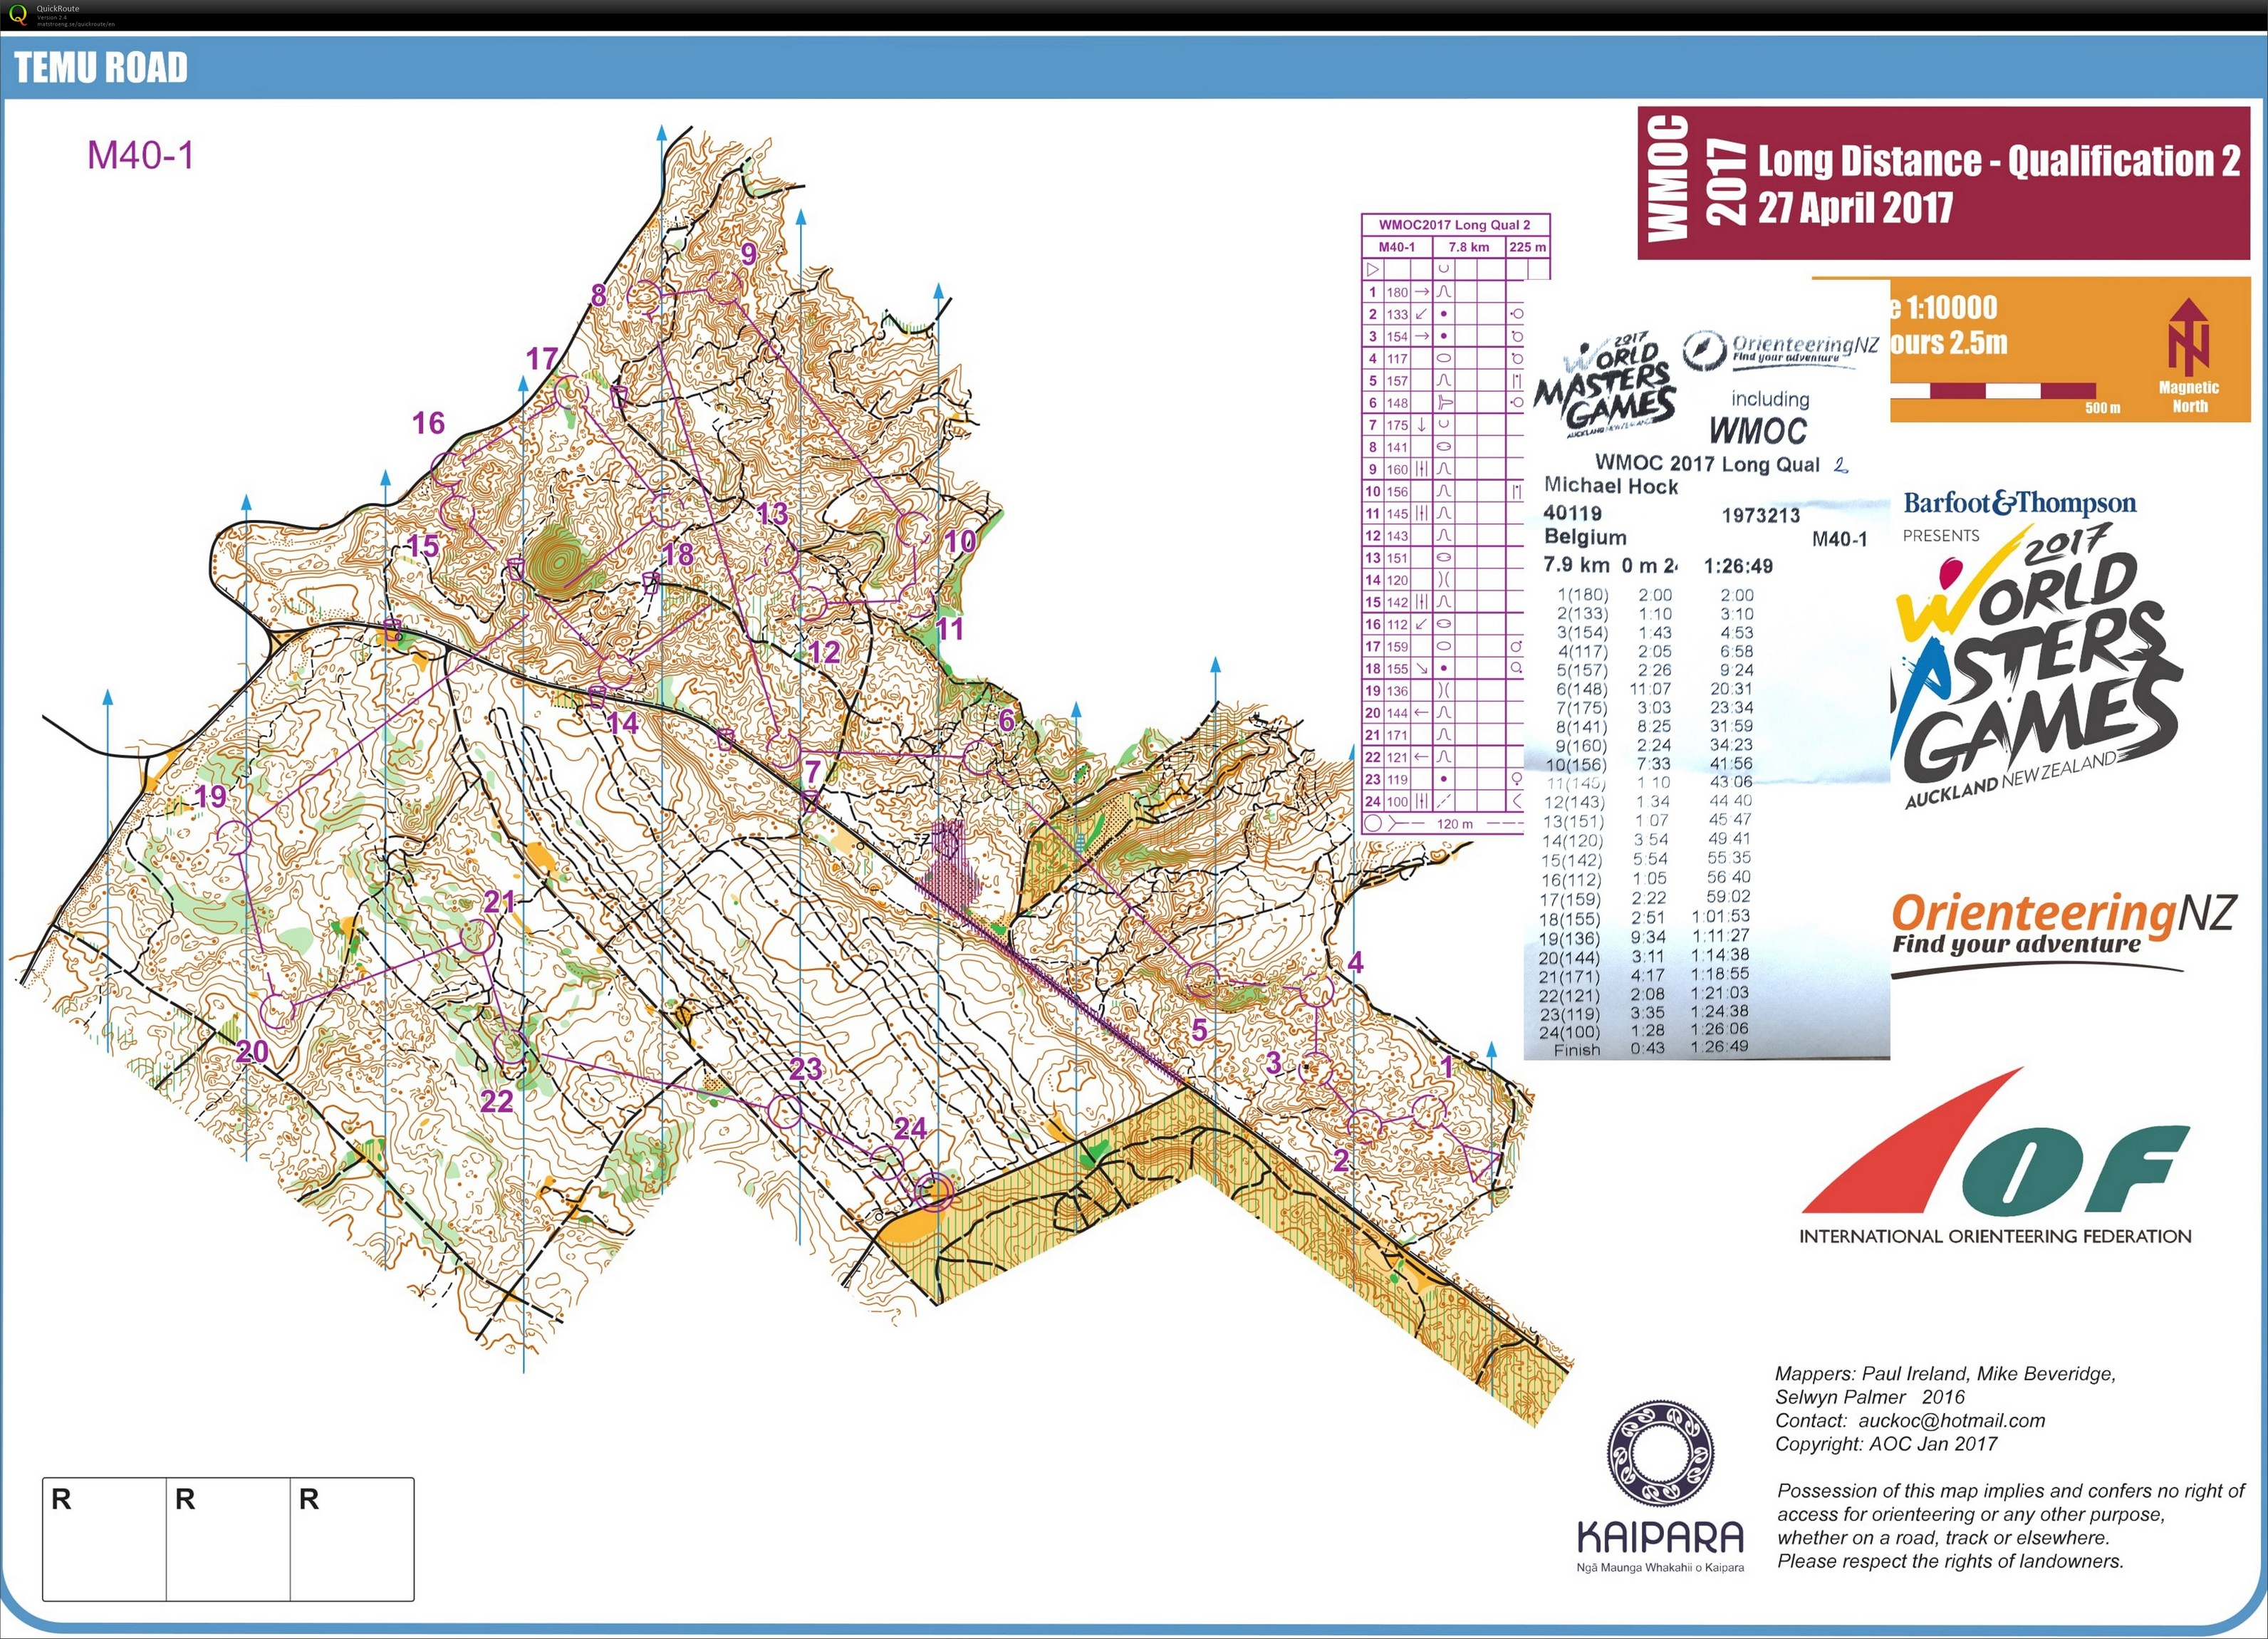 WMOC 2017 Long Qualification 2 (26.04.2017)